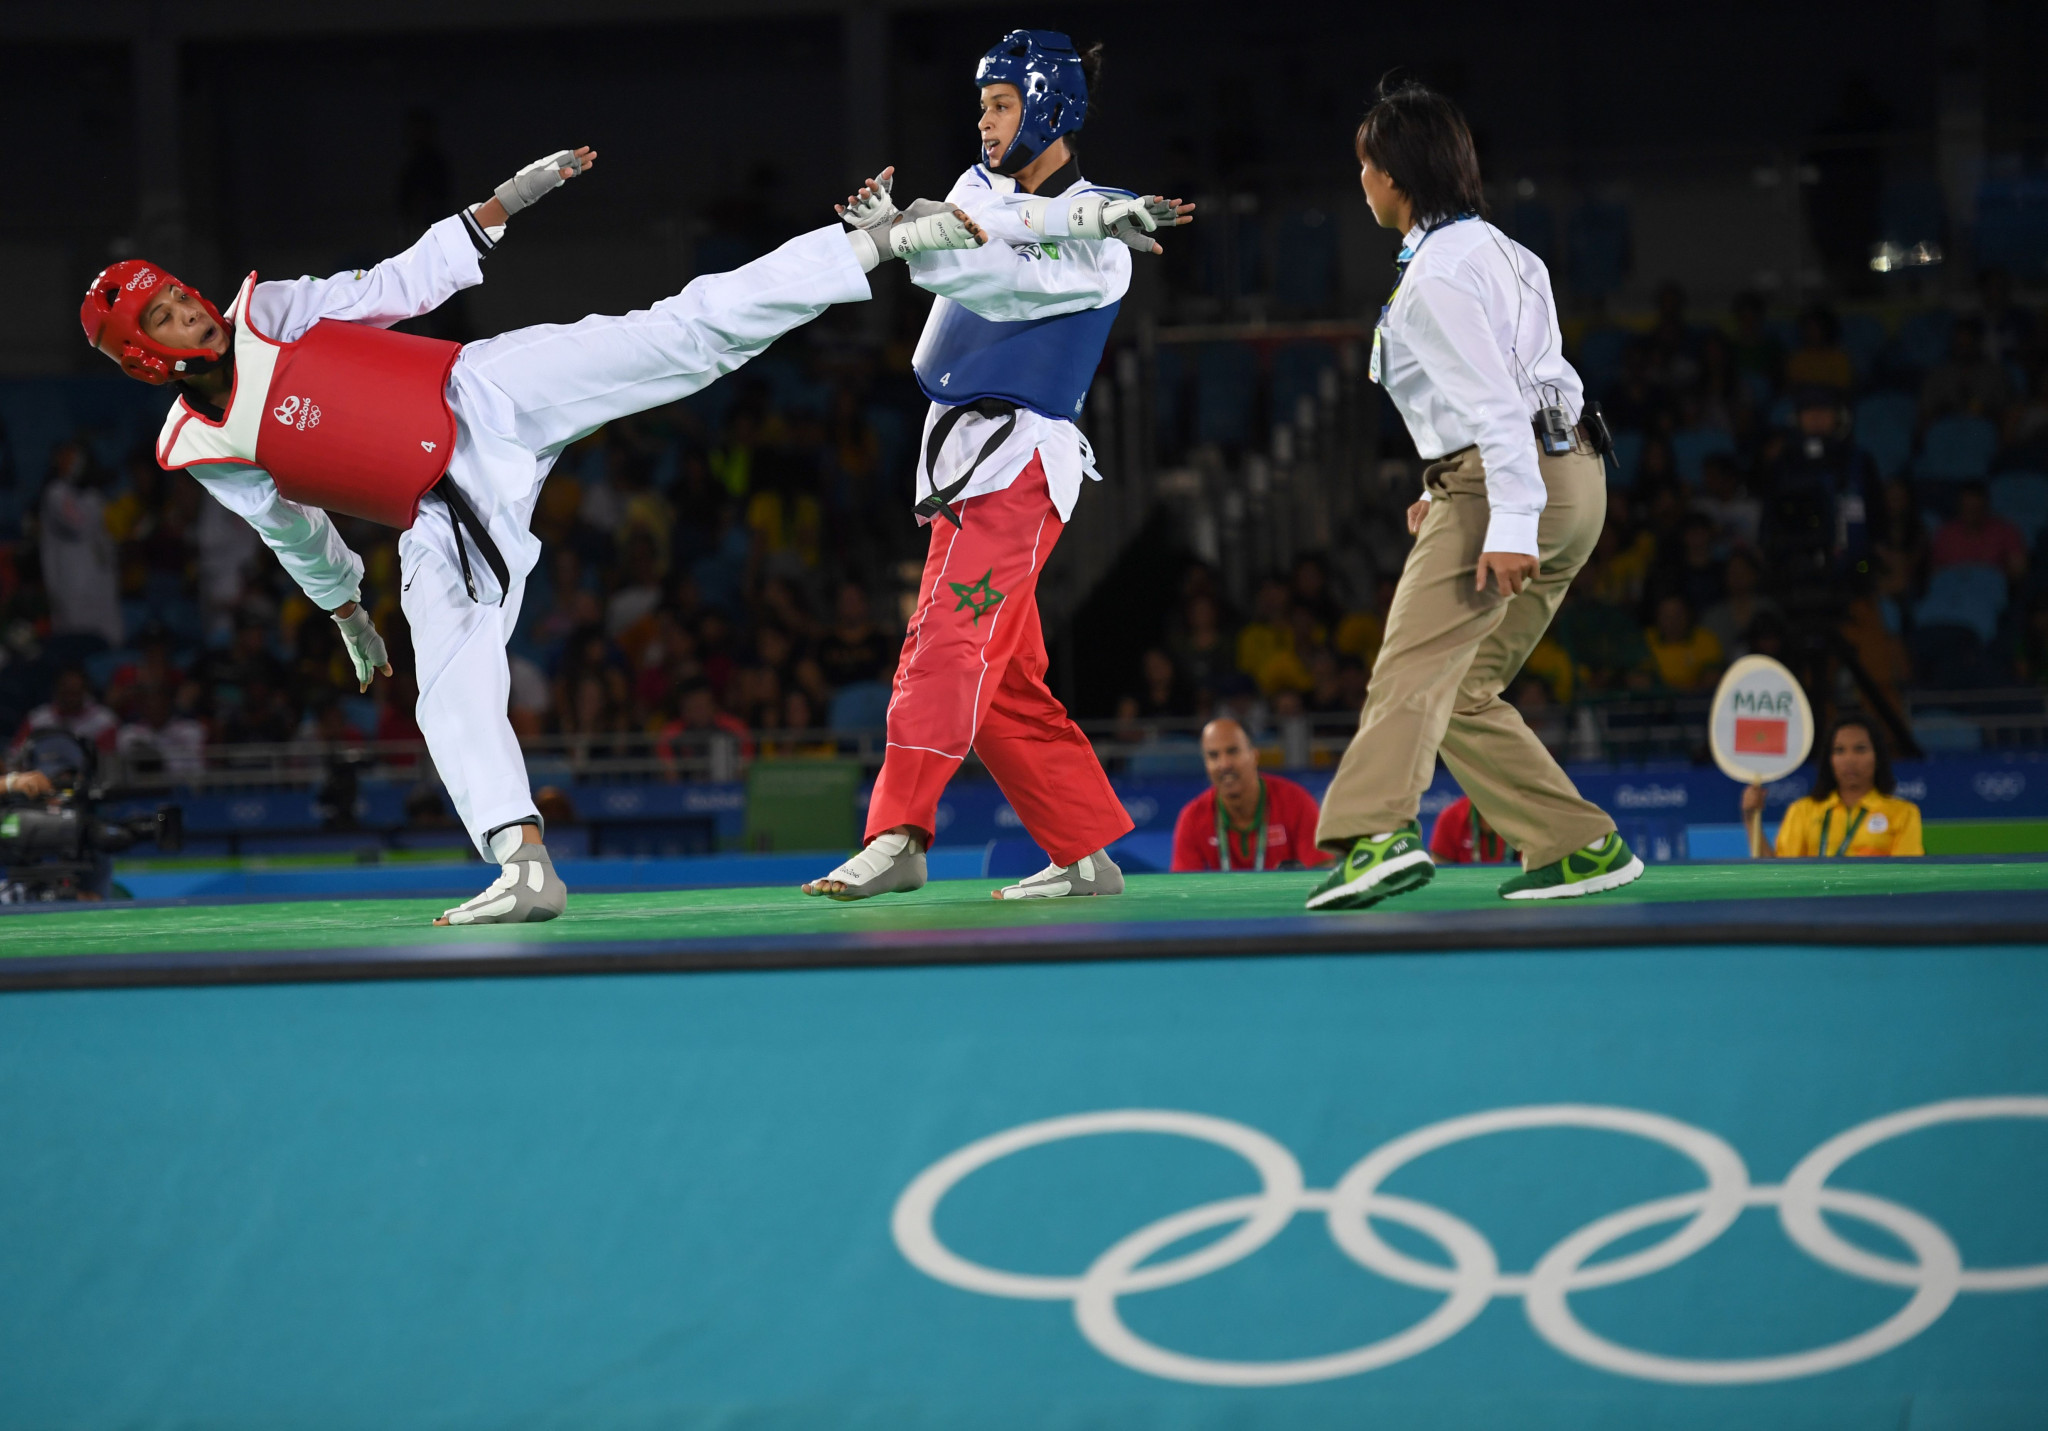 Katherine Rodríguez, left, is hoping for a better outcome at her second Olympic appearance ©Getty Images